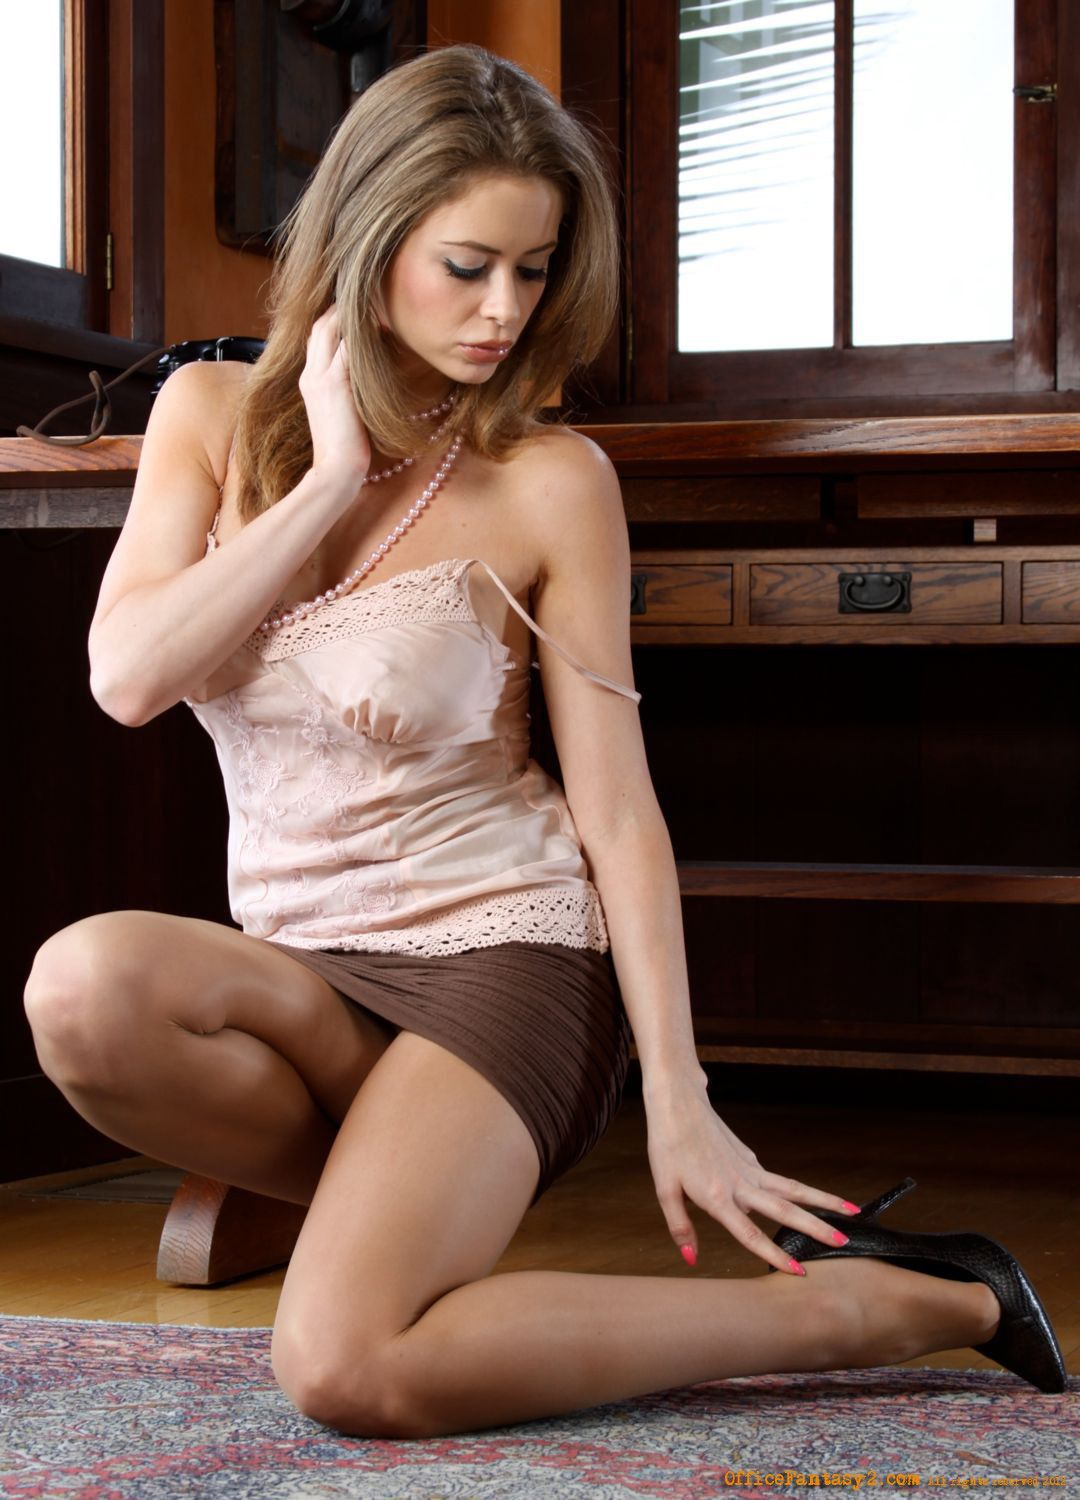 Pantyhose Lover Latino Emily Addison Pinterest